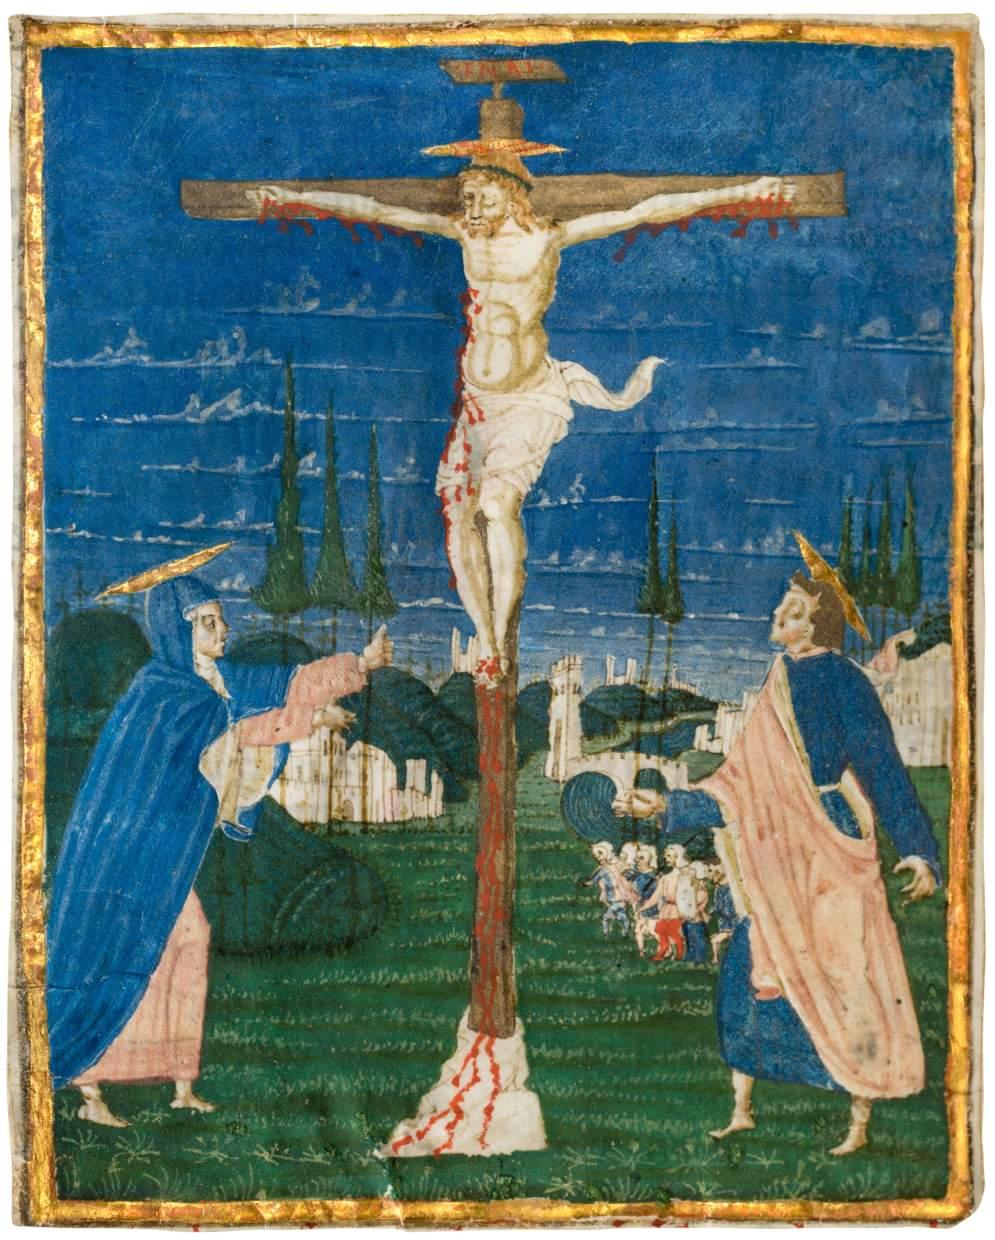 Crucifixion, cutting from a Missal